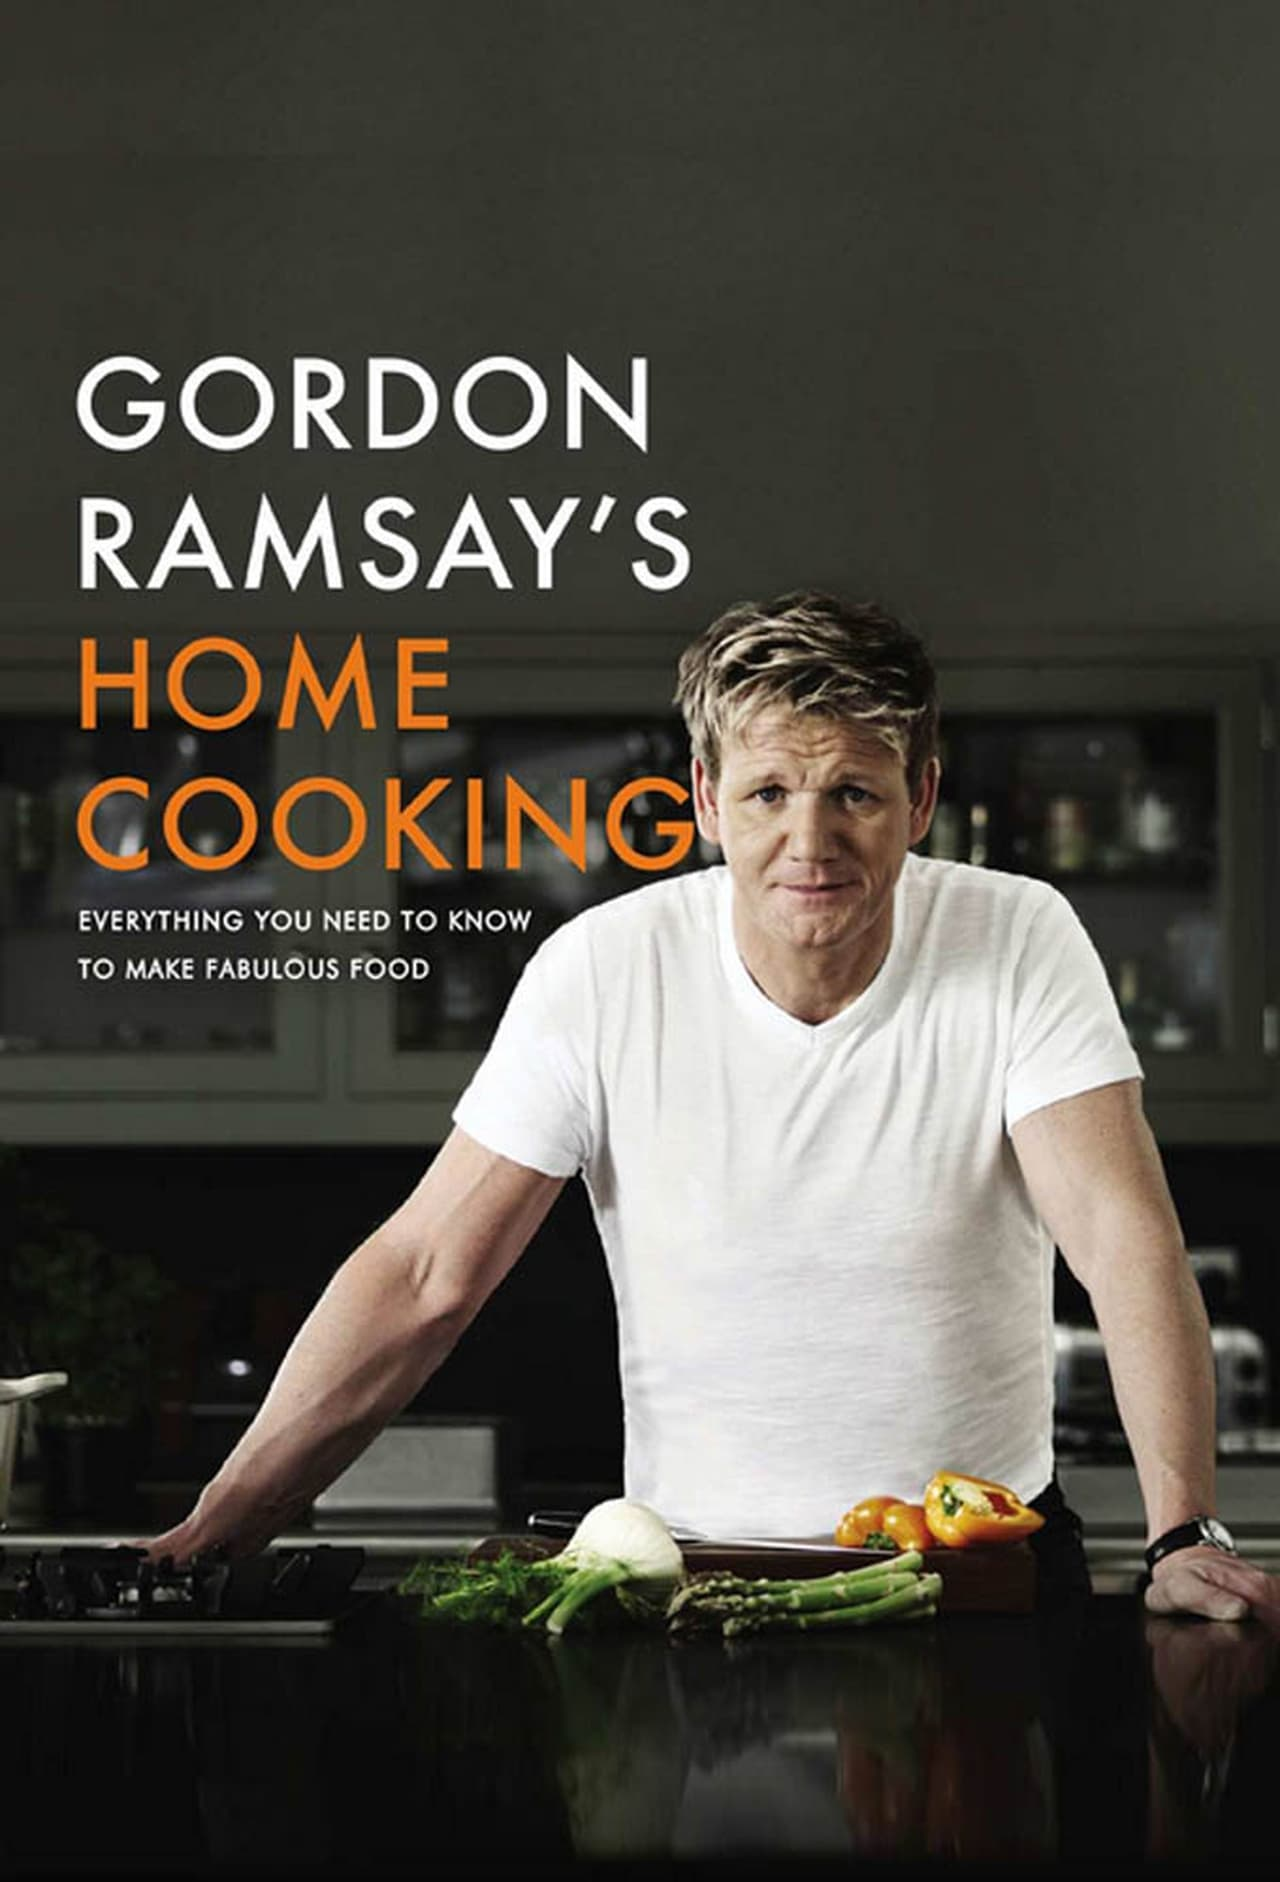 Gordon Ramsay's Home Cooking